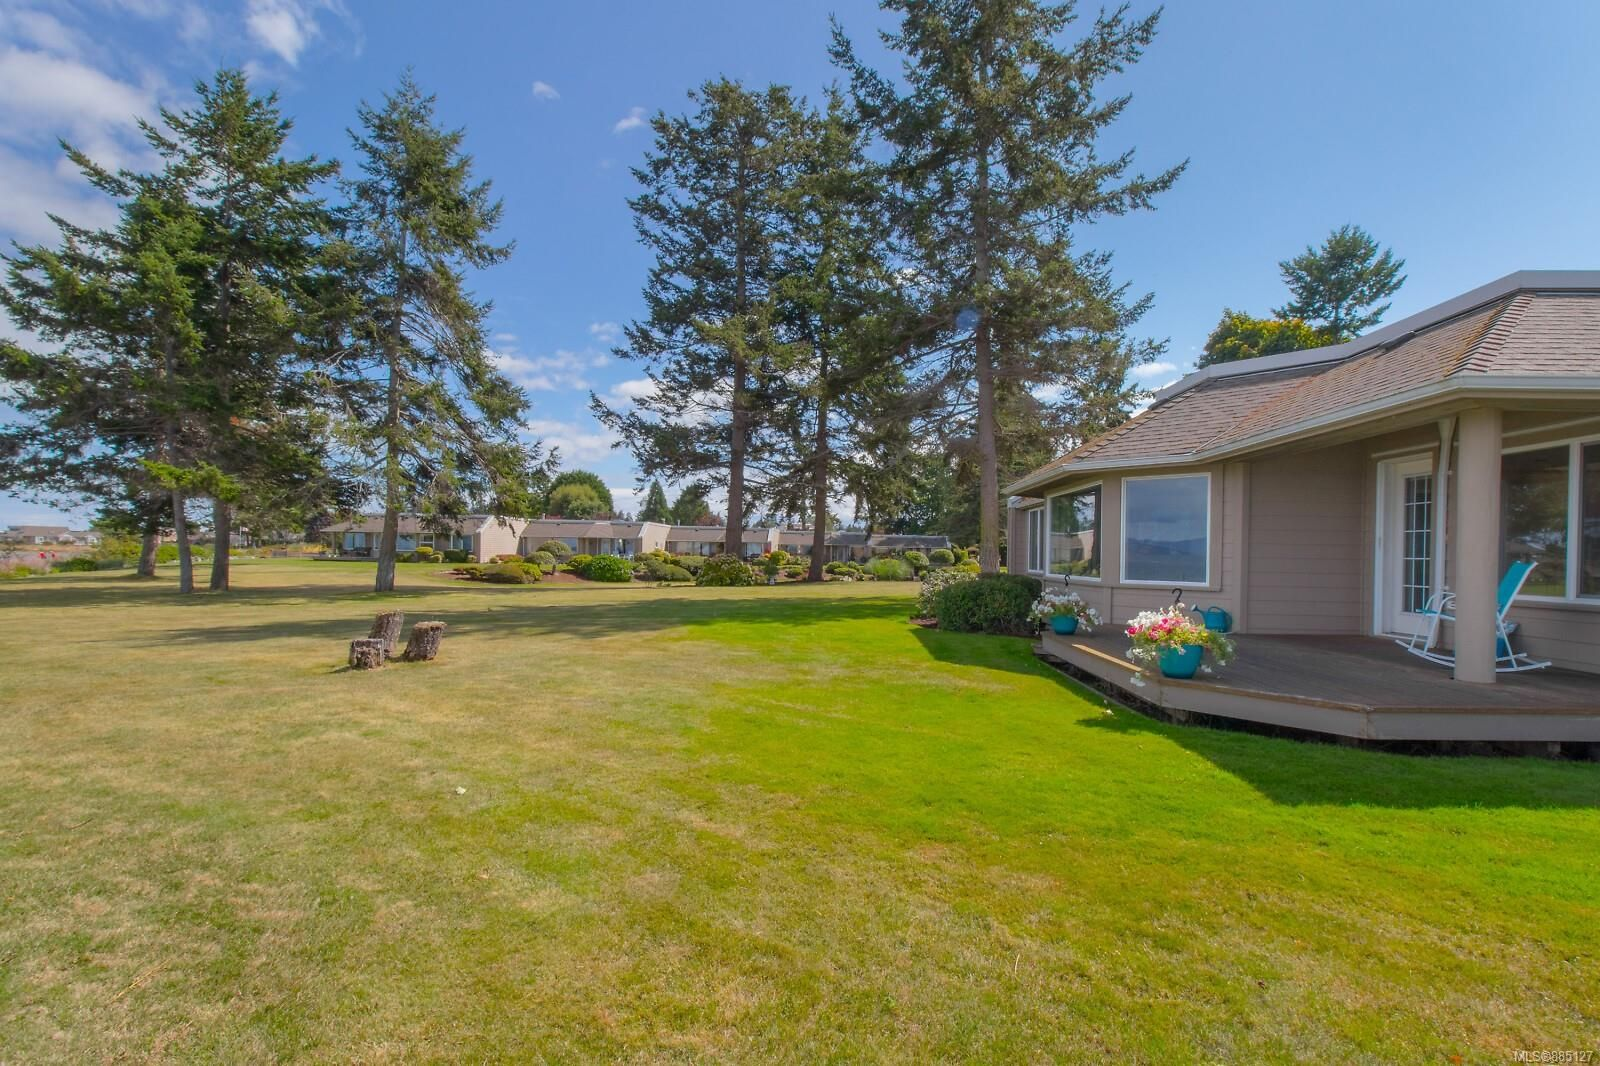 Photo 46: Photos: 26 529 Johnstone Rd in : PQ French Creek Row/Townhouse for sale (Parksville/Qualicum)  : MLS®# 885127